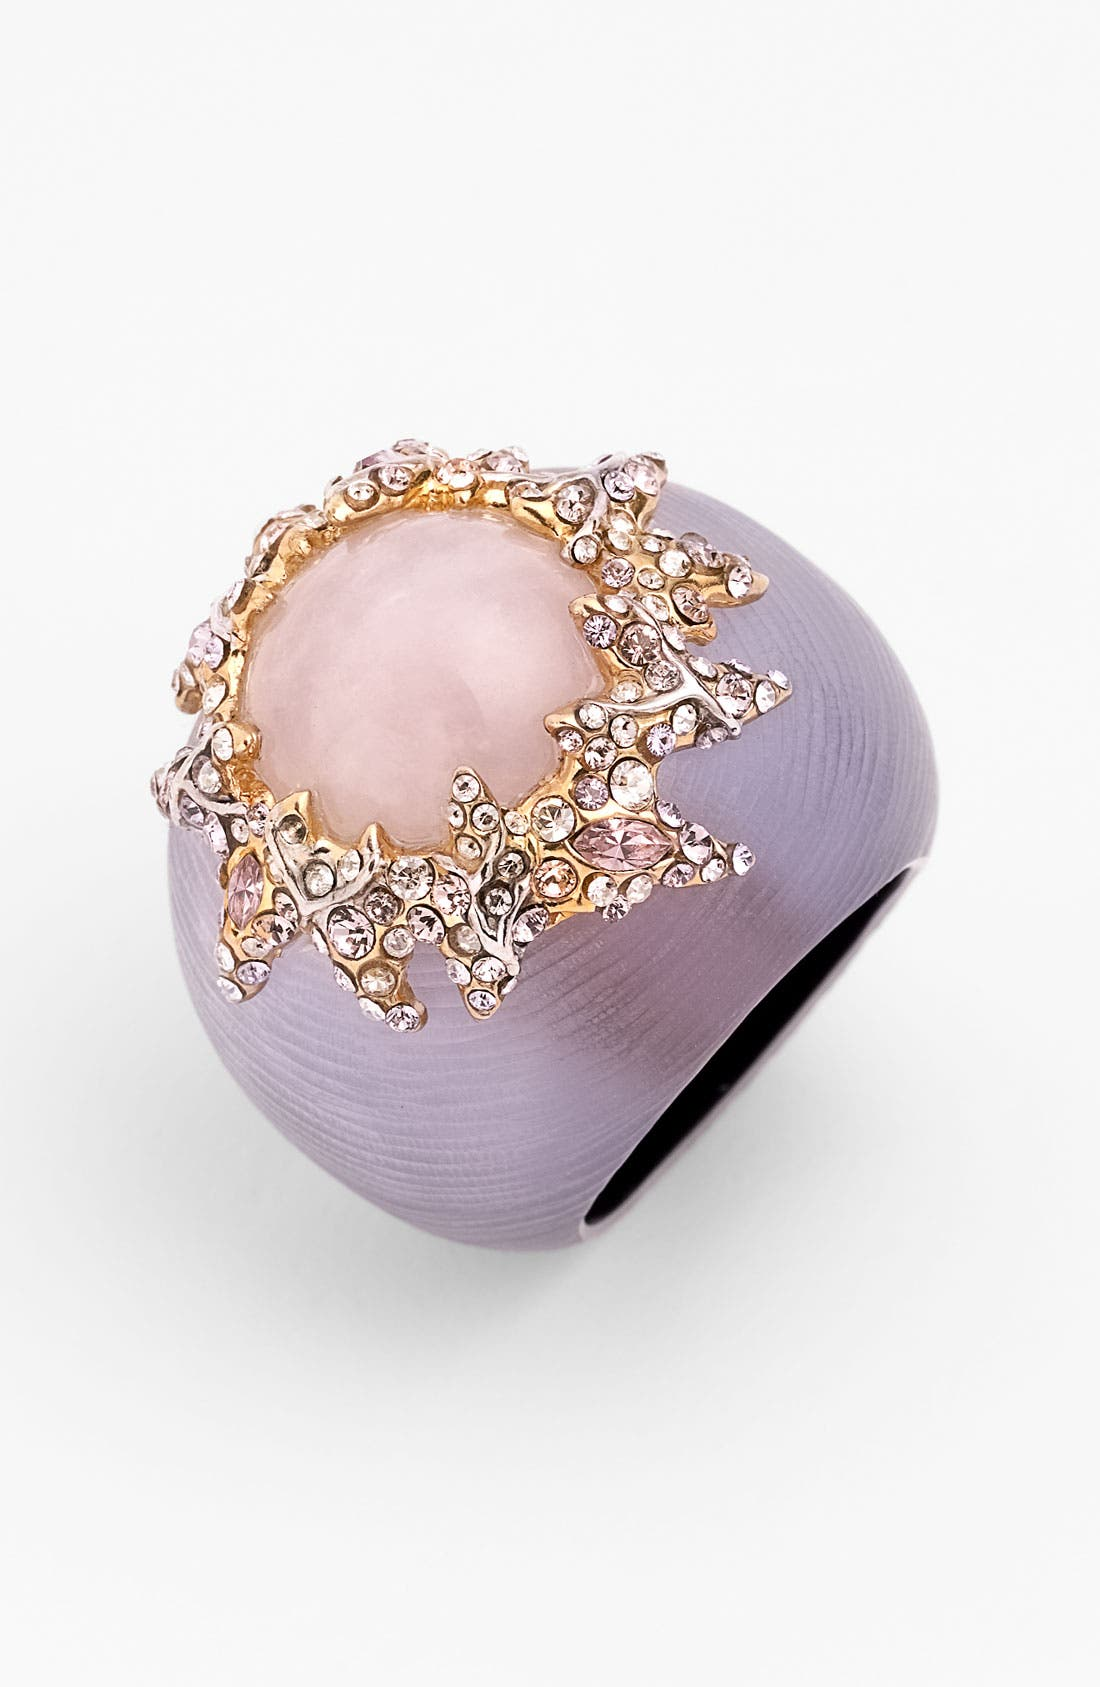 ALEXIS BITTAR Rosy Ring, Main, color, 530